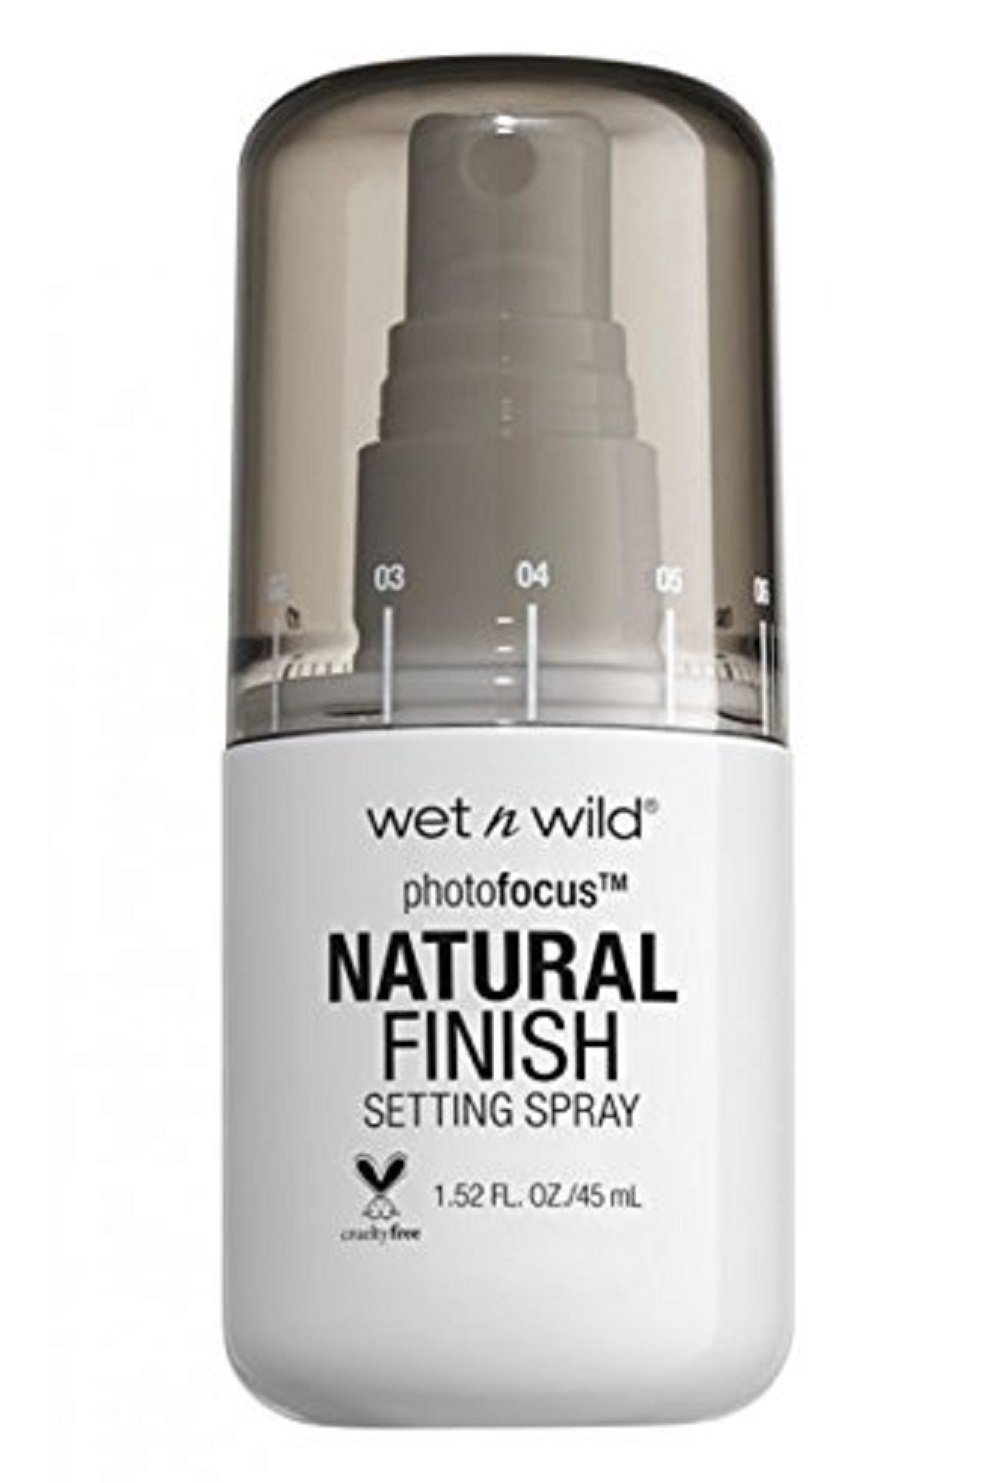 Wet n Wild 301A Photo focus setting spray, 1.52 Ounce, Seal The Deal Markwins Beauty Products